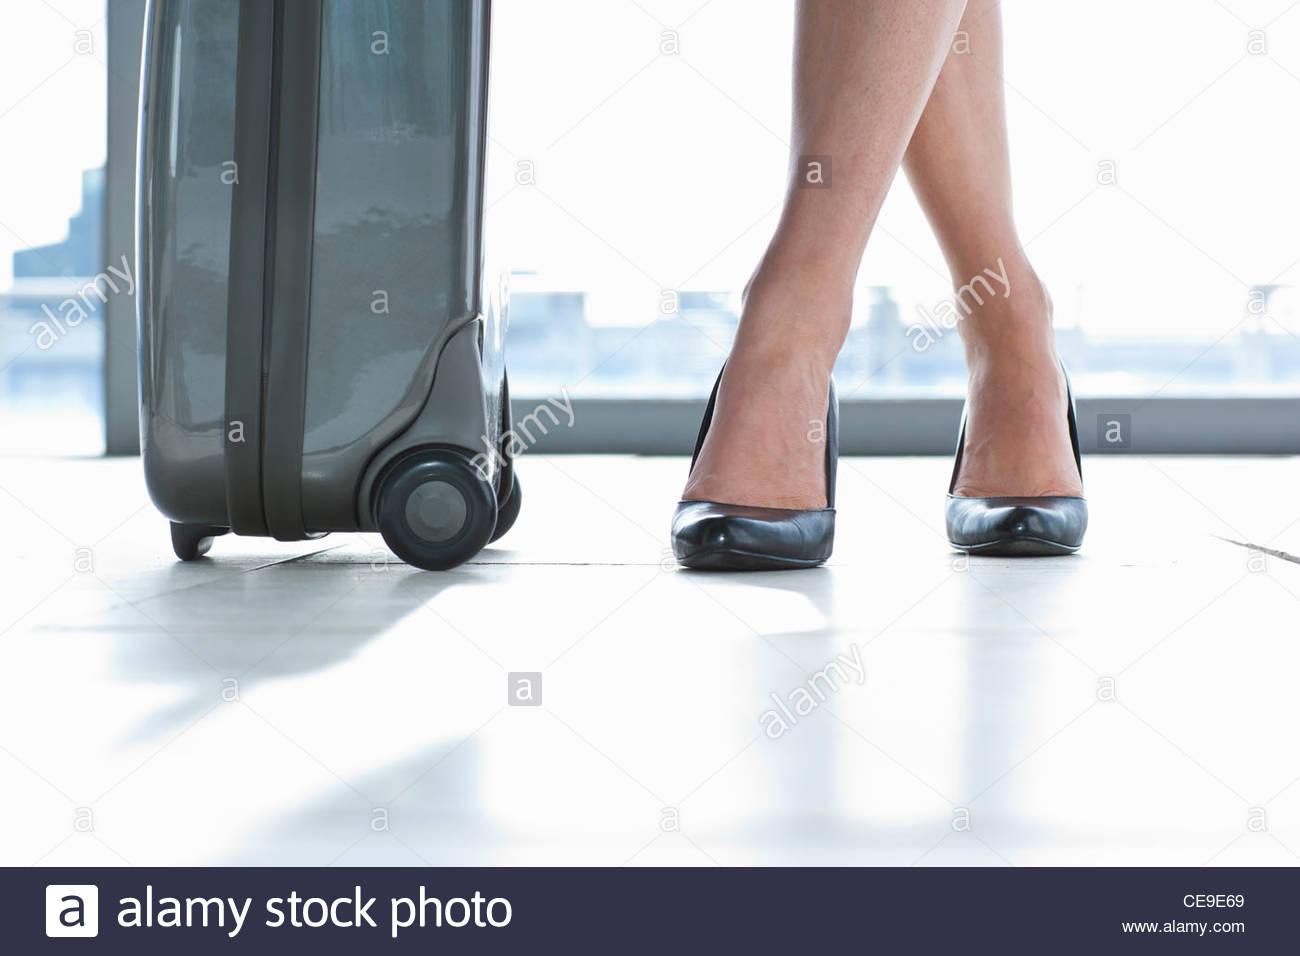 Close up of suitcase and businesswoman's high heels - Stock Image